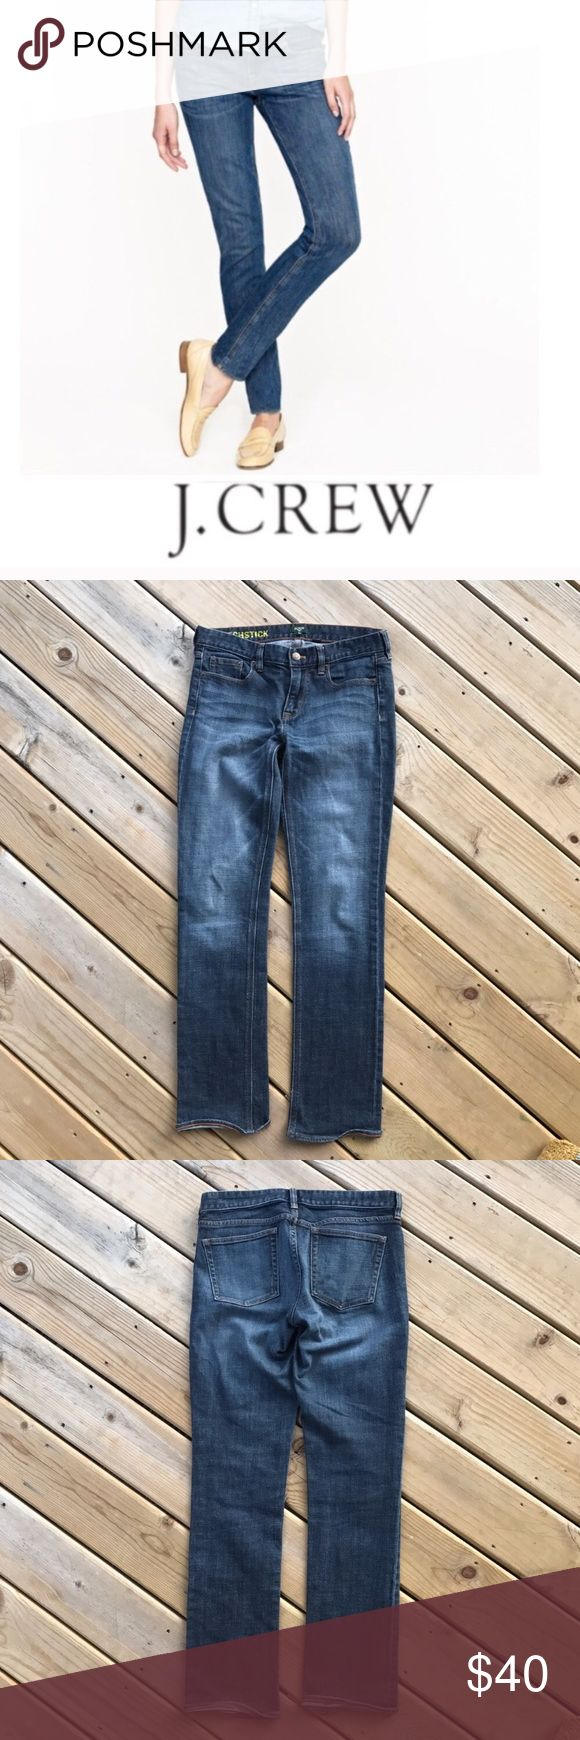 """J. Crew Matchstick Stretch Jeans Size 31 J. Crew Matchstick stretch jeans. 30"""" inseam. 98% cotton, 2% spandex. Excellent condition! Reasonable offers always welcome! 😊 No trades, thank you. J. Crew Jeans Straight Leg"""